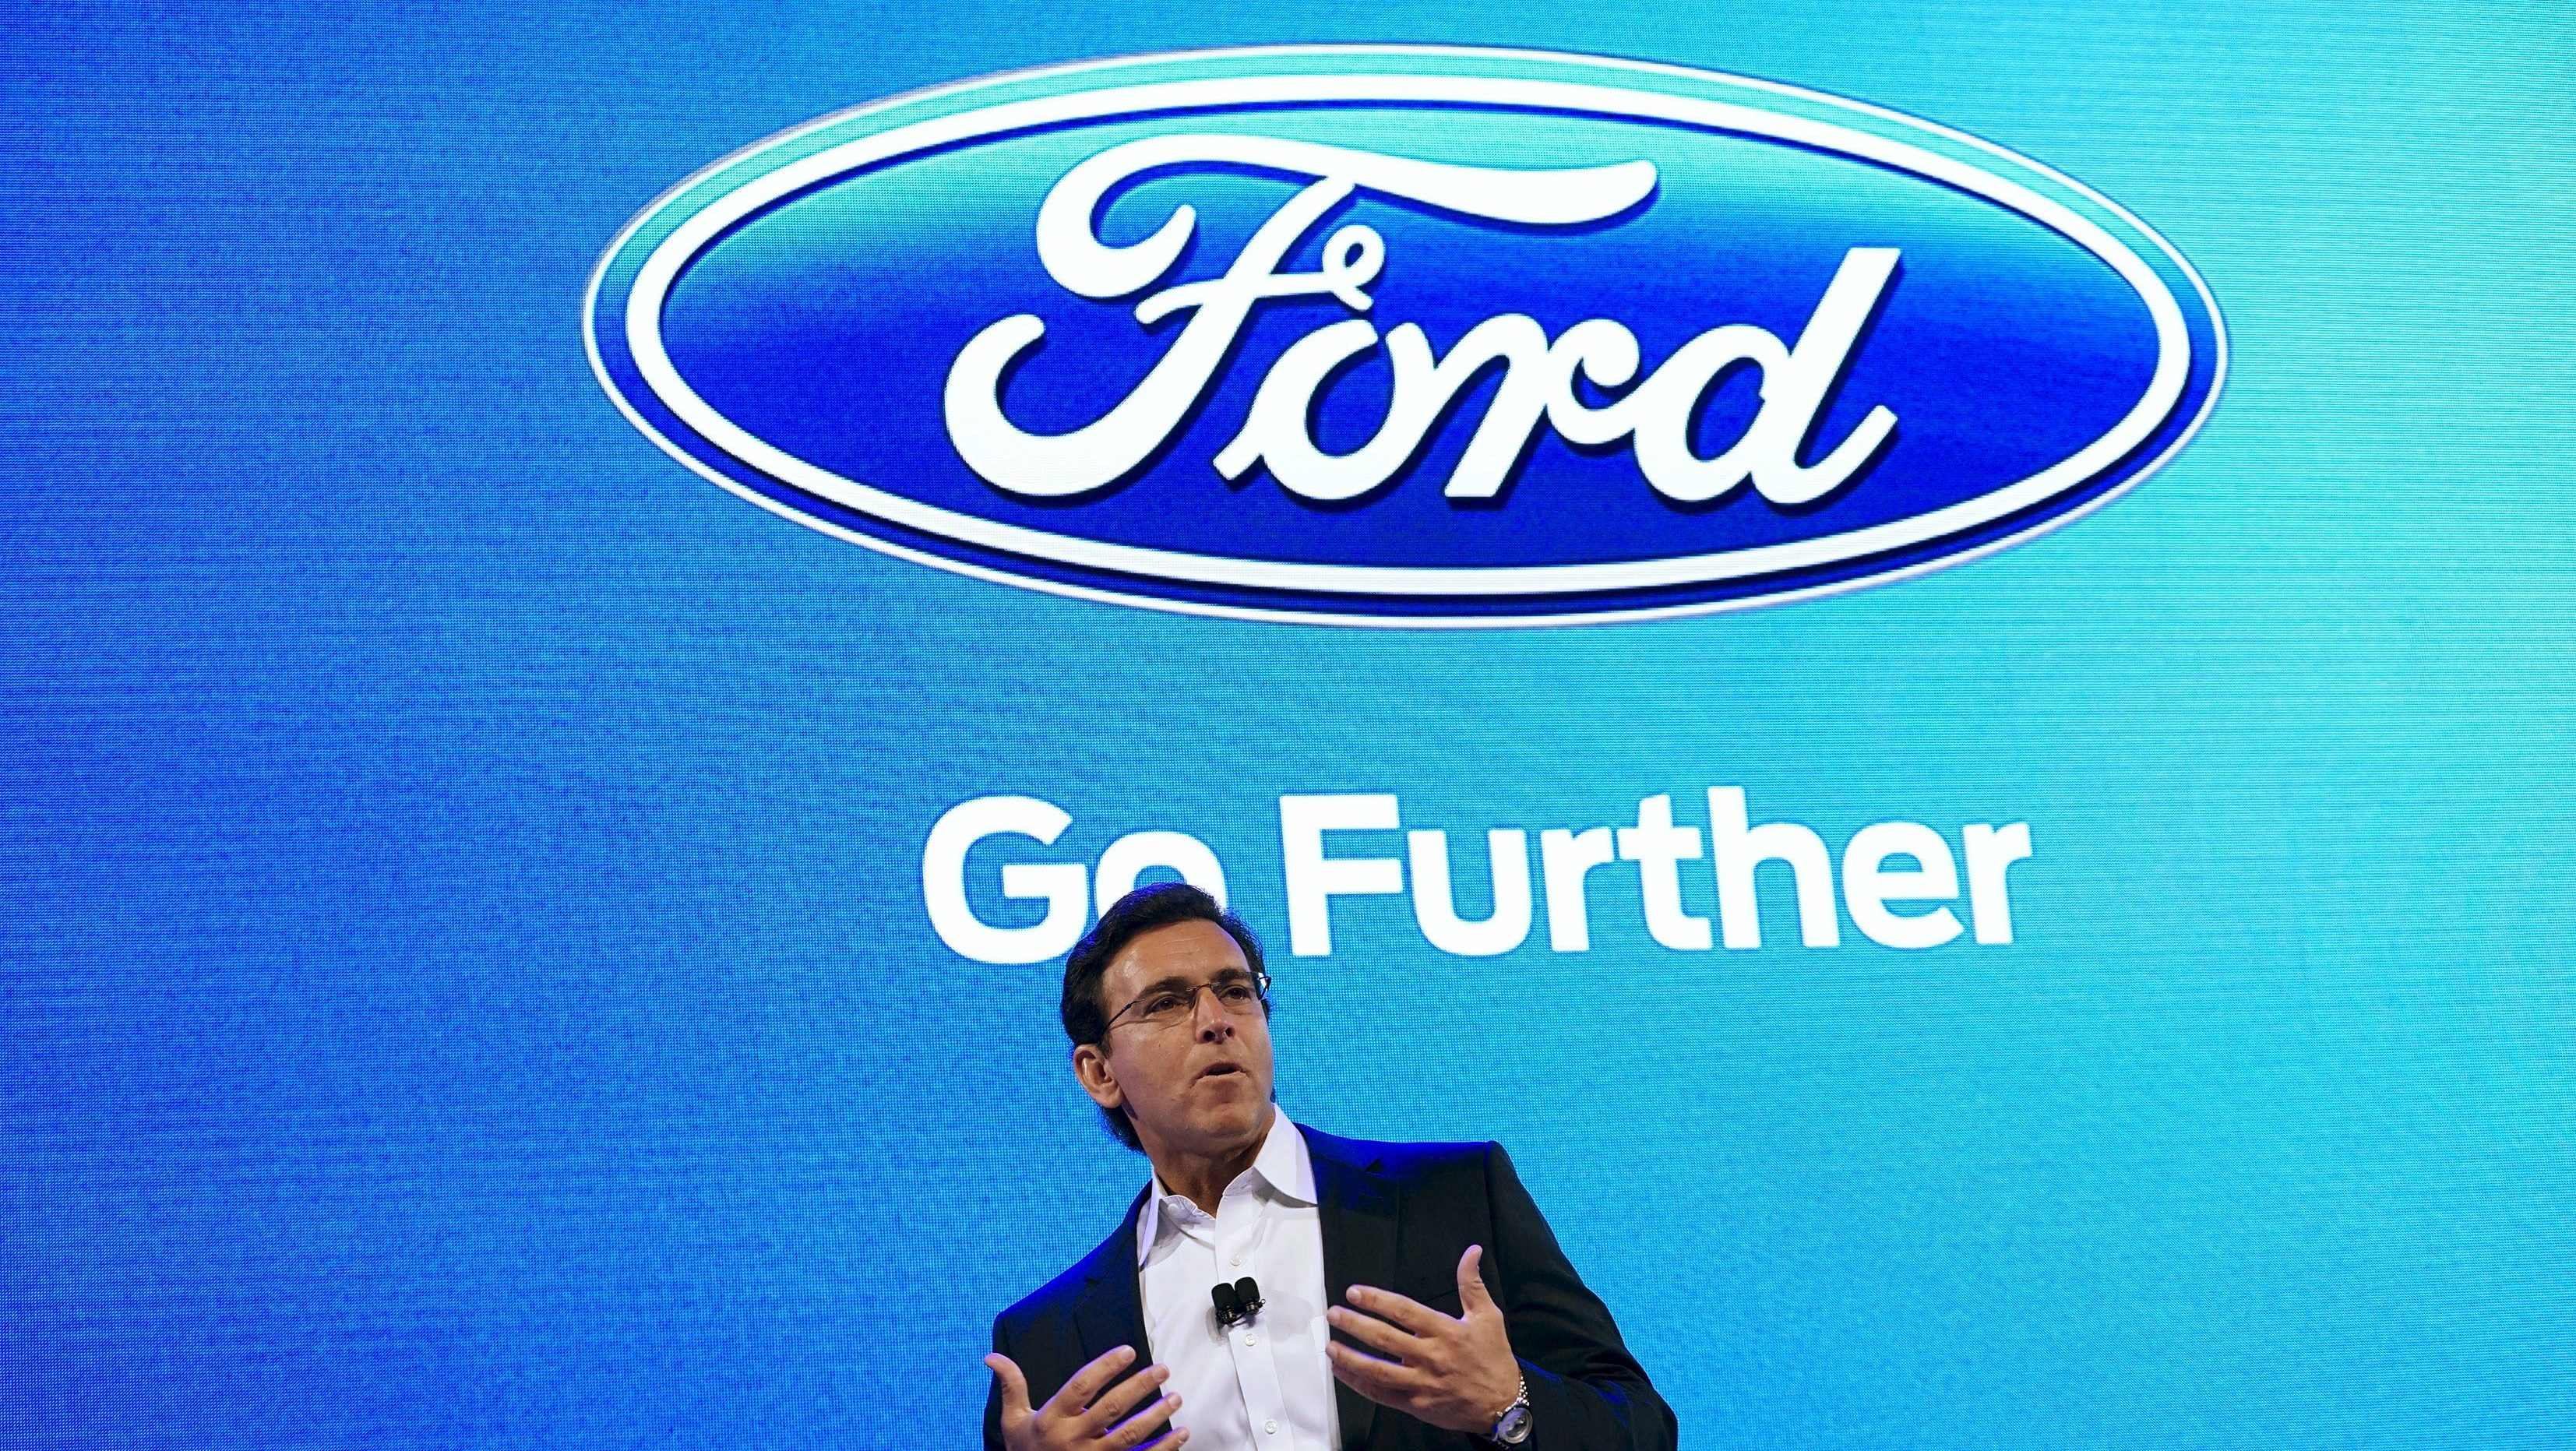 Ford-VW alliance begs question: Can any car company go it alone